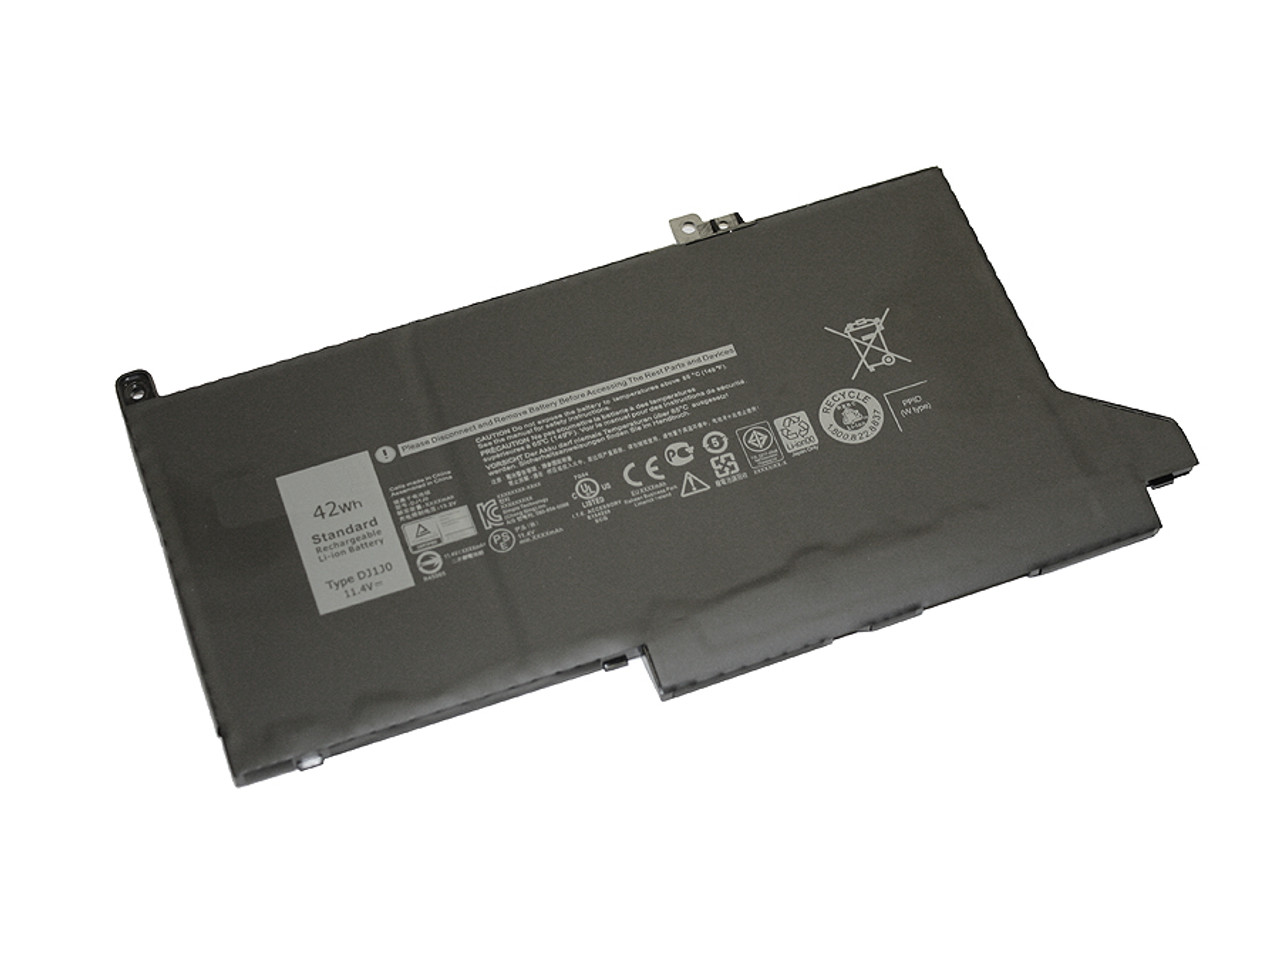 Replacement Battery for Latitude 7480, 7280, 7490, 7390, 7380, 7290